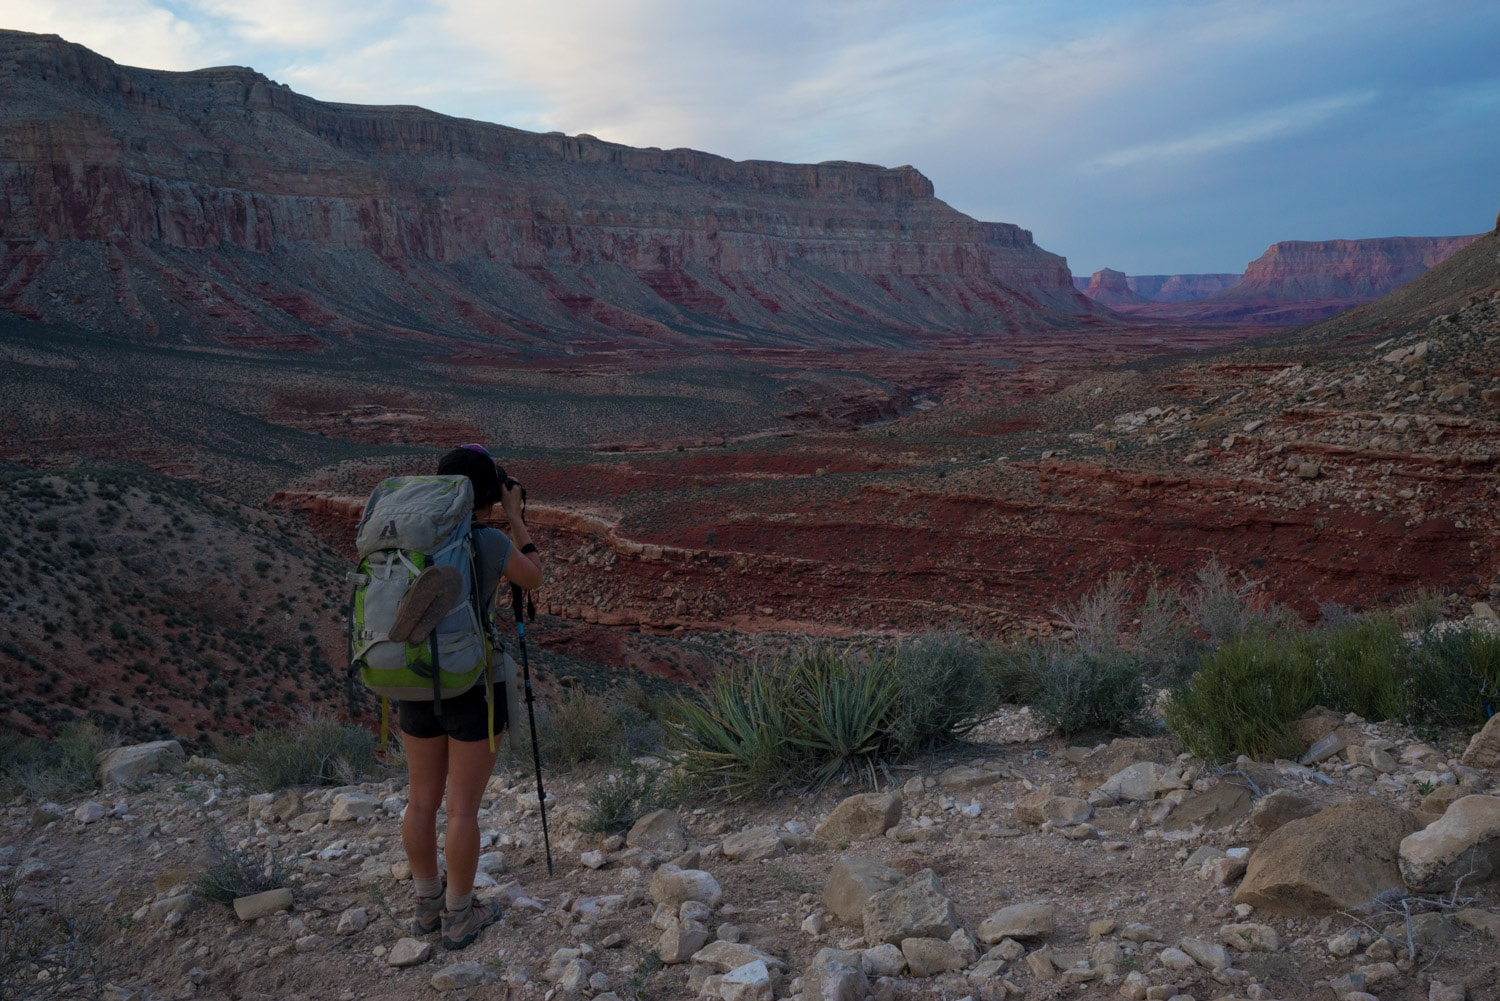 Prepare for your southwest adventure with these desert backpacking tips! Learn where to go, what gear you need, and advice for having fun & being safe // Backpacking to Havasu Falls